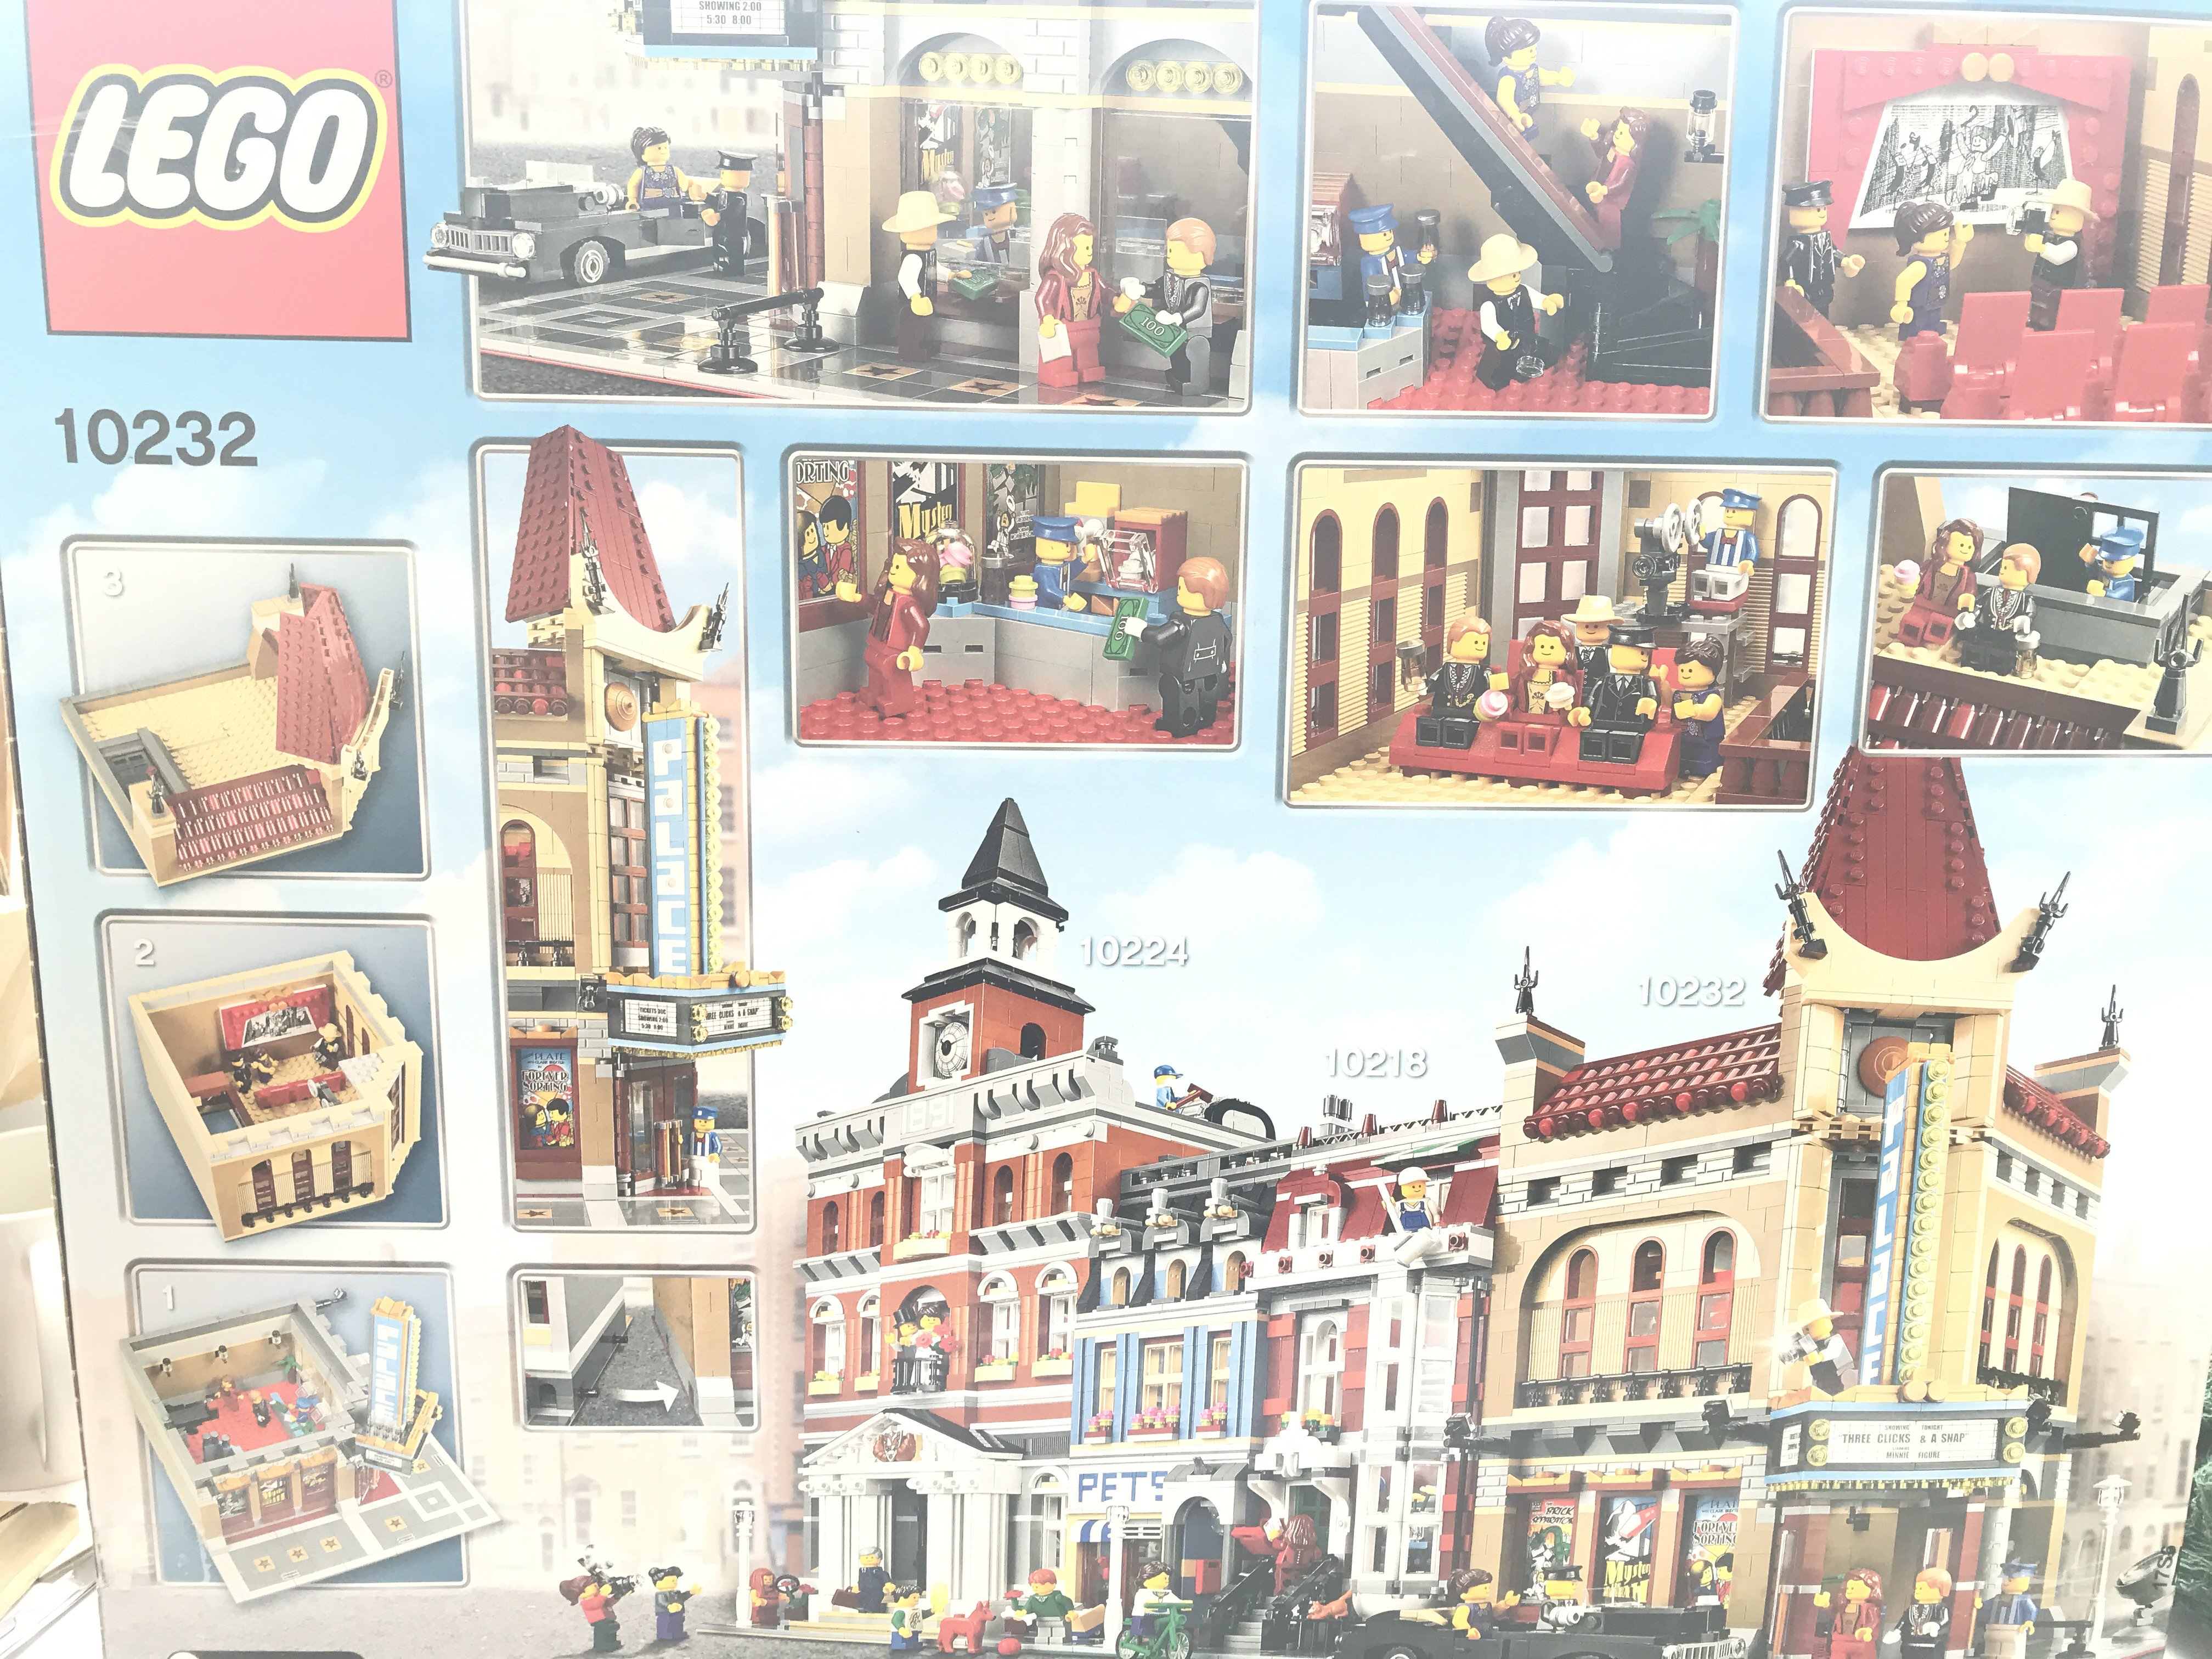 A Boxed Lego Palace Cinema 2194 pcs #10232 complet - Image 2 of 2